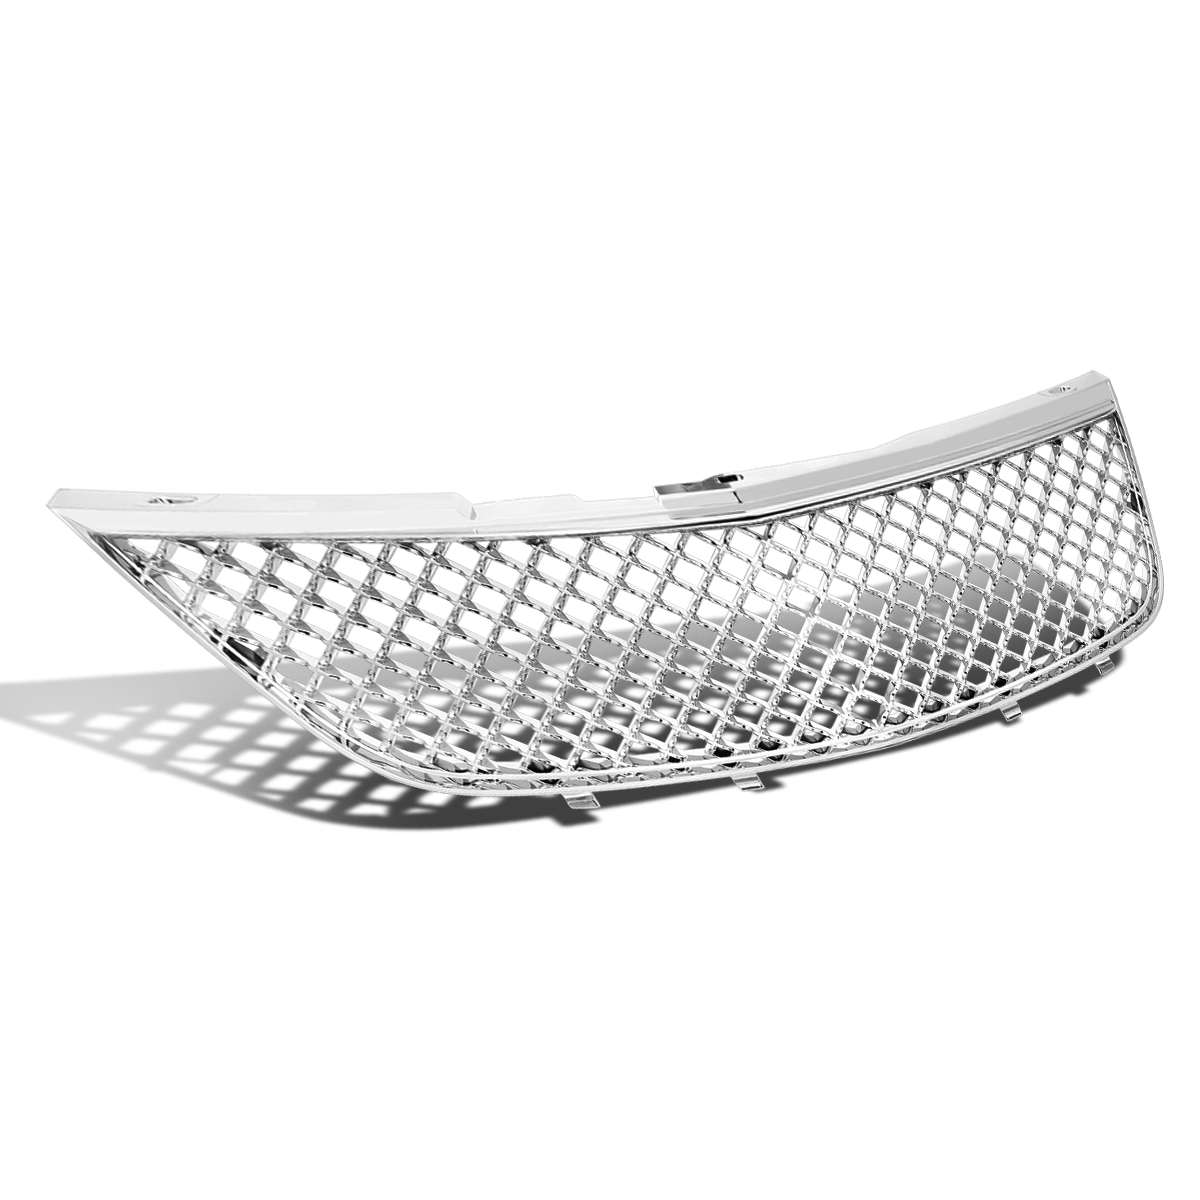 00 05 Chevy Impala Bolt On Front Bumper Abs Mesh Grill